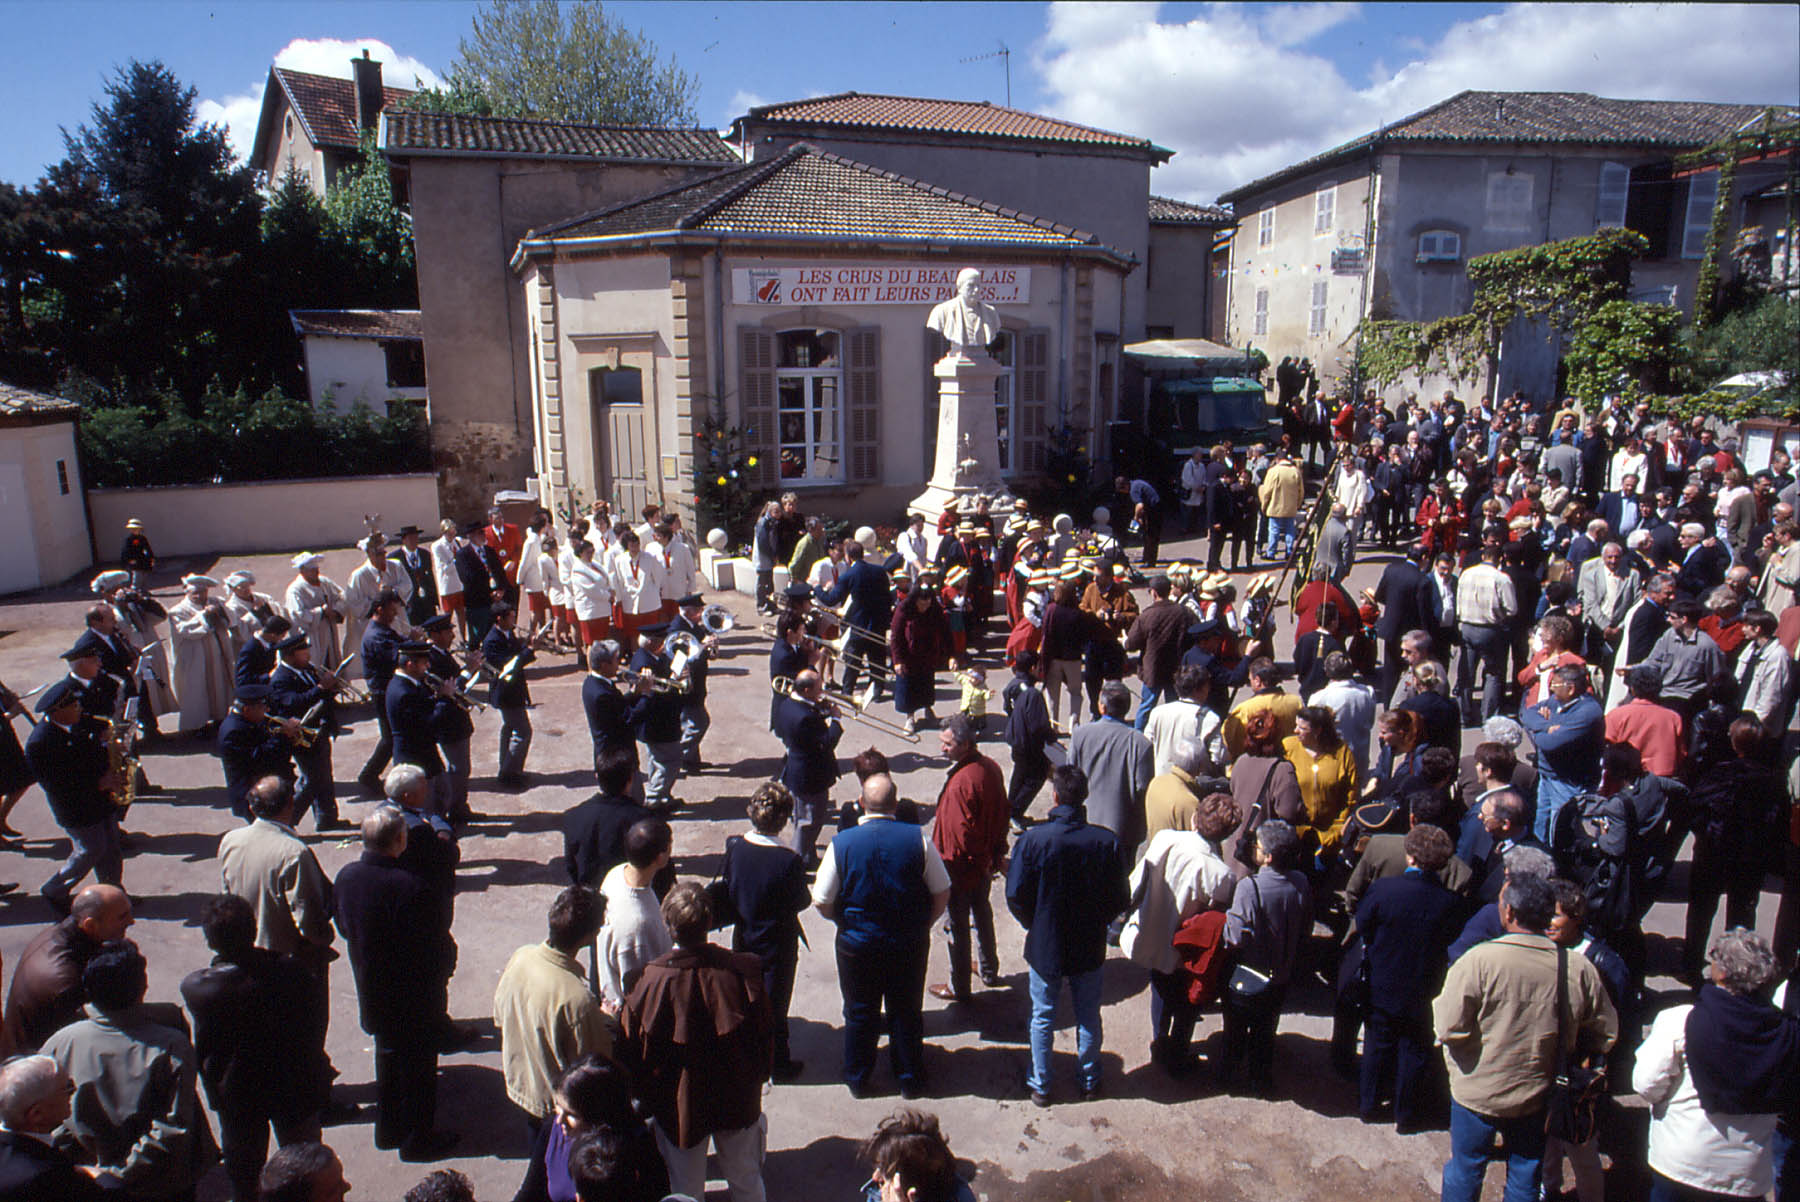 They've left their mark on history in the Beaujolais region